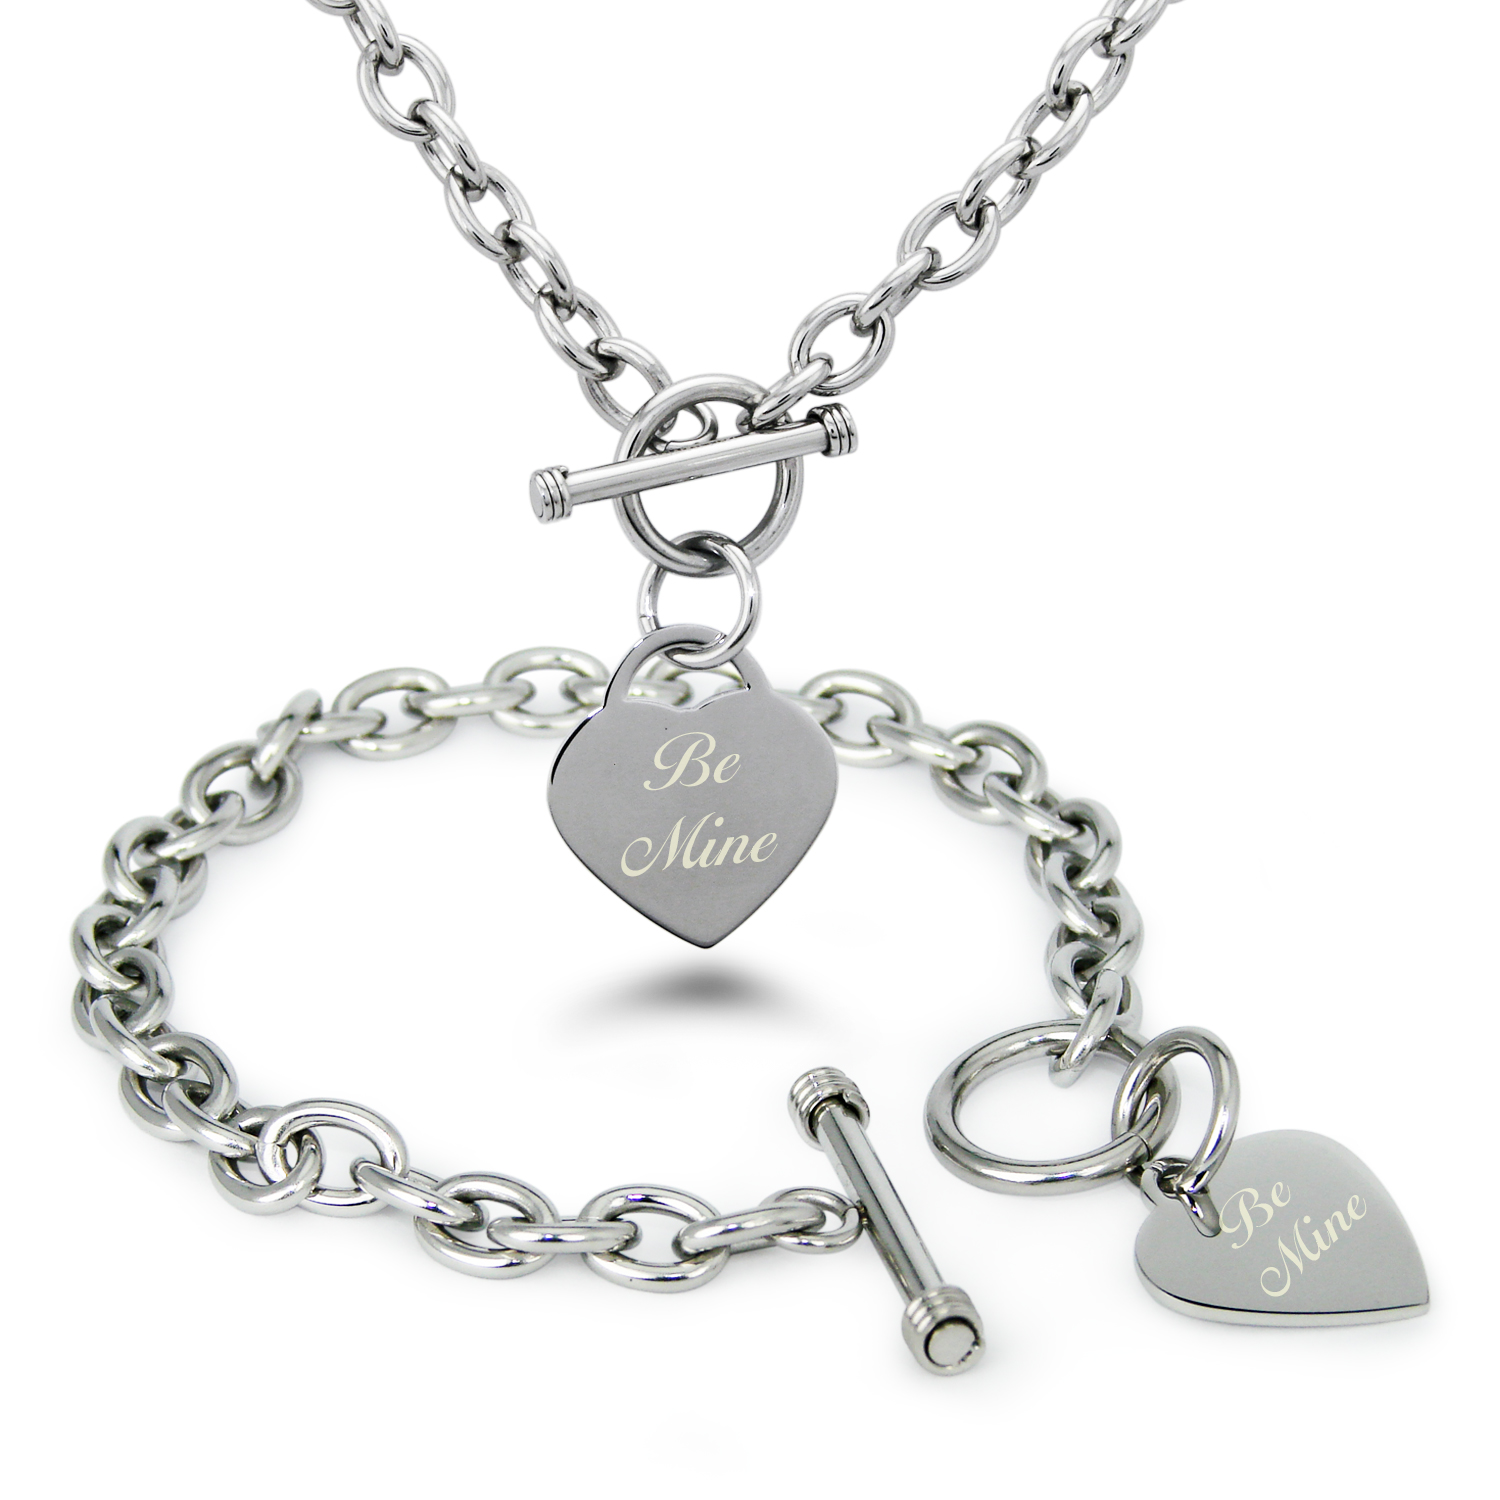 Stainless Steel Be Mine Heart Charm Toggle Bracelet & Necklace